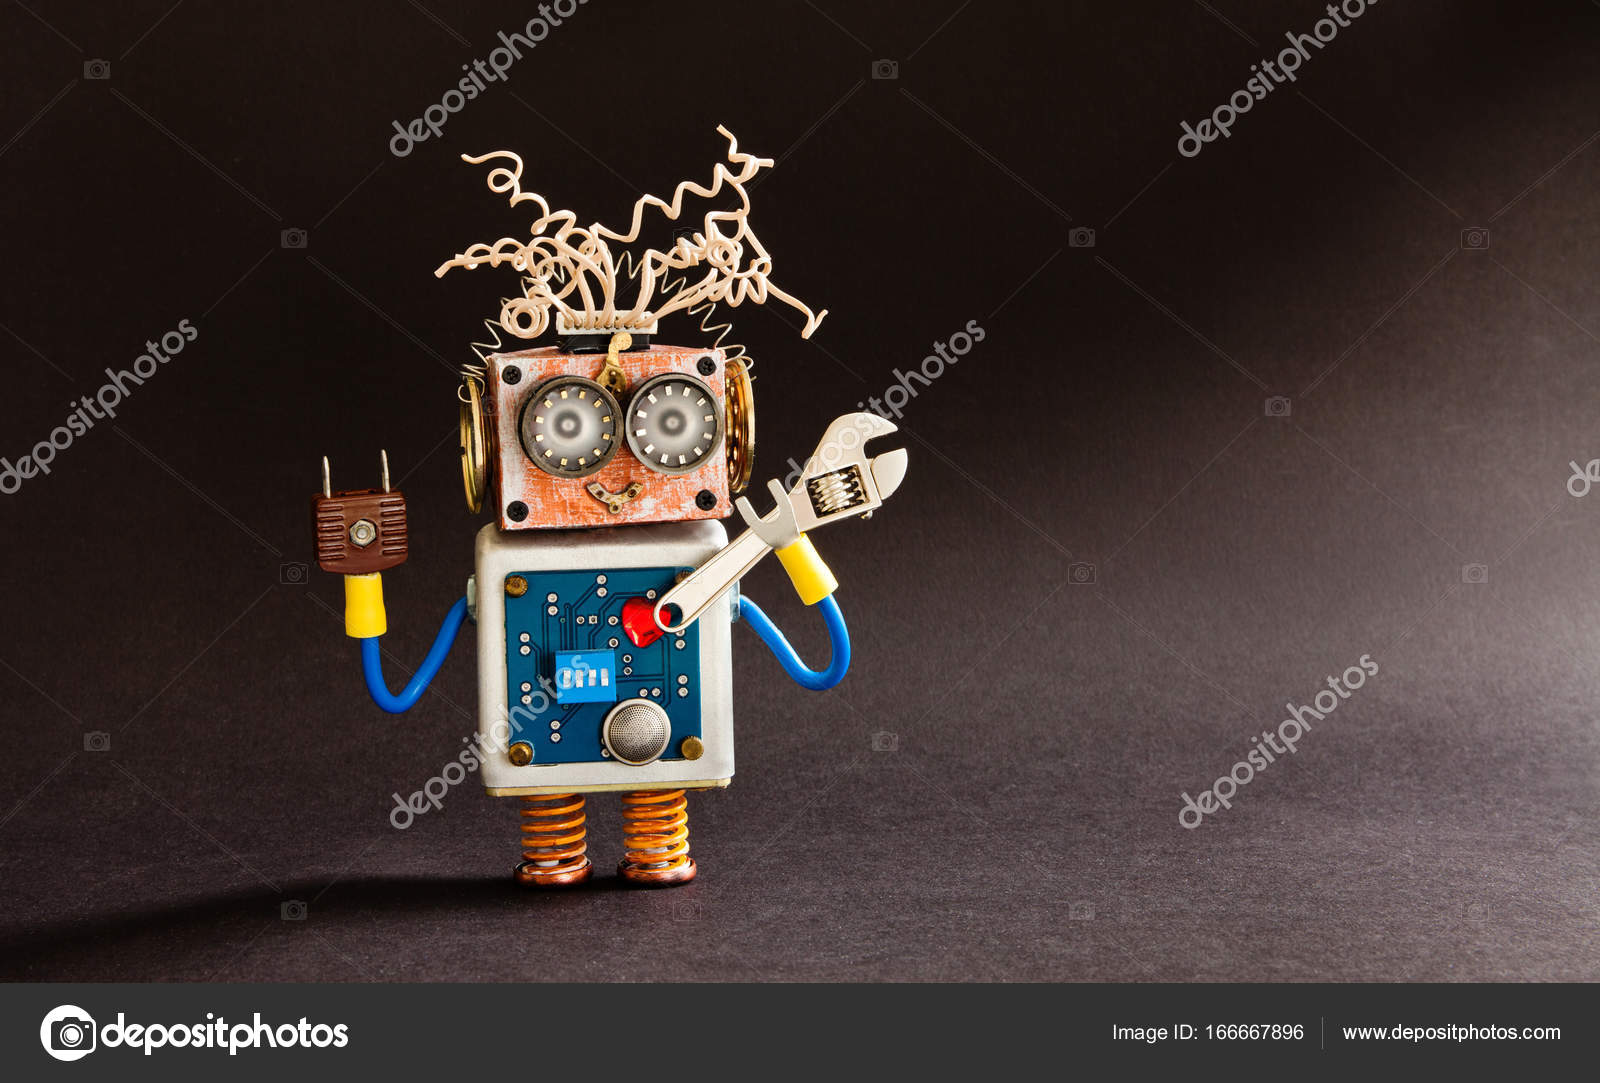 Crazy Serviceman Robot Ready With Adjustable Spanner Creative Electronic Circuit Design Notes Cyborg Toy Electric Wires Hairstyle Big Eyeglasses Body Red Heart Black Background Copy Space Photo By Besjunior